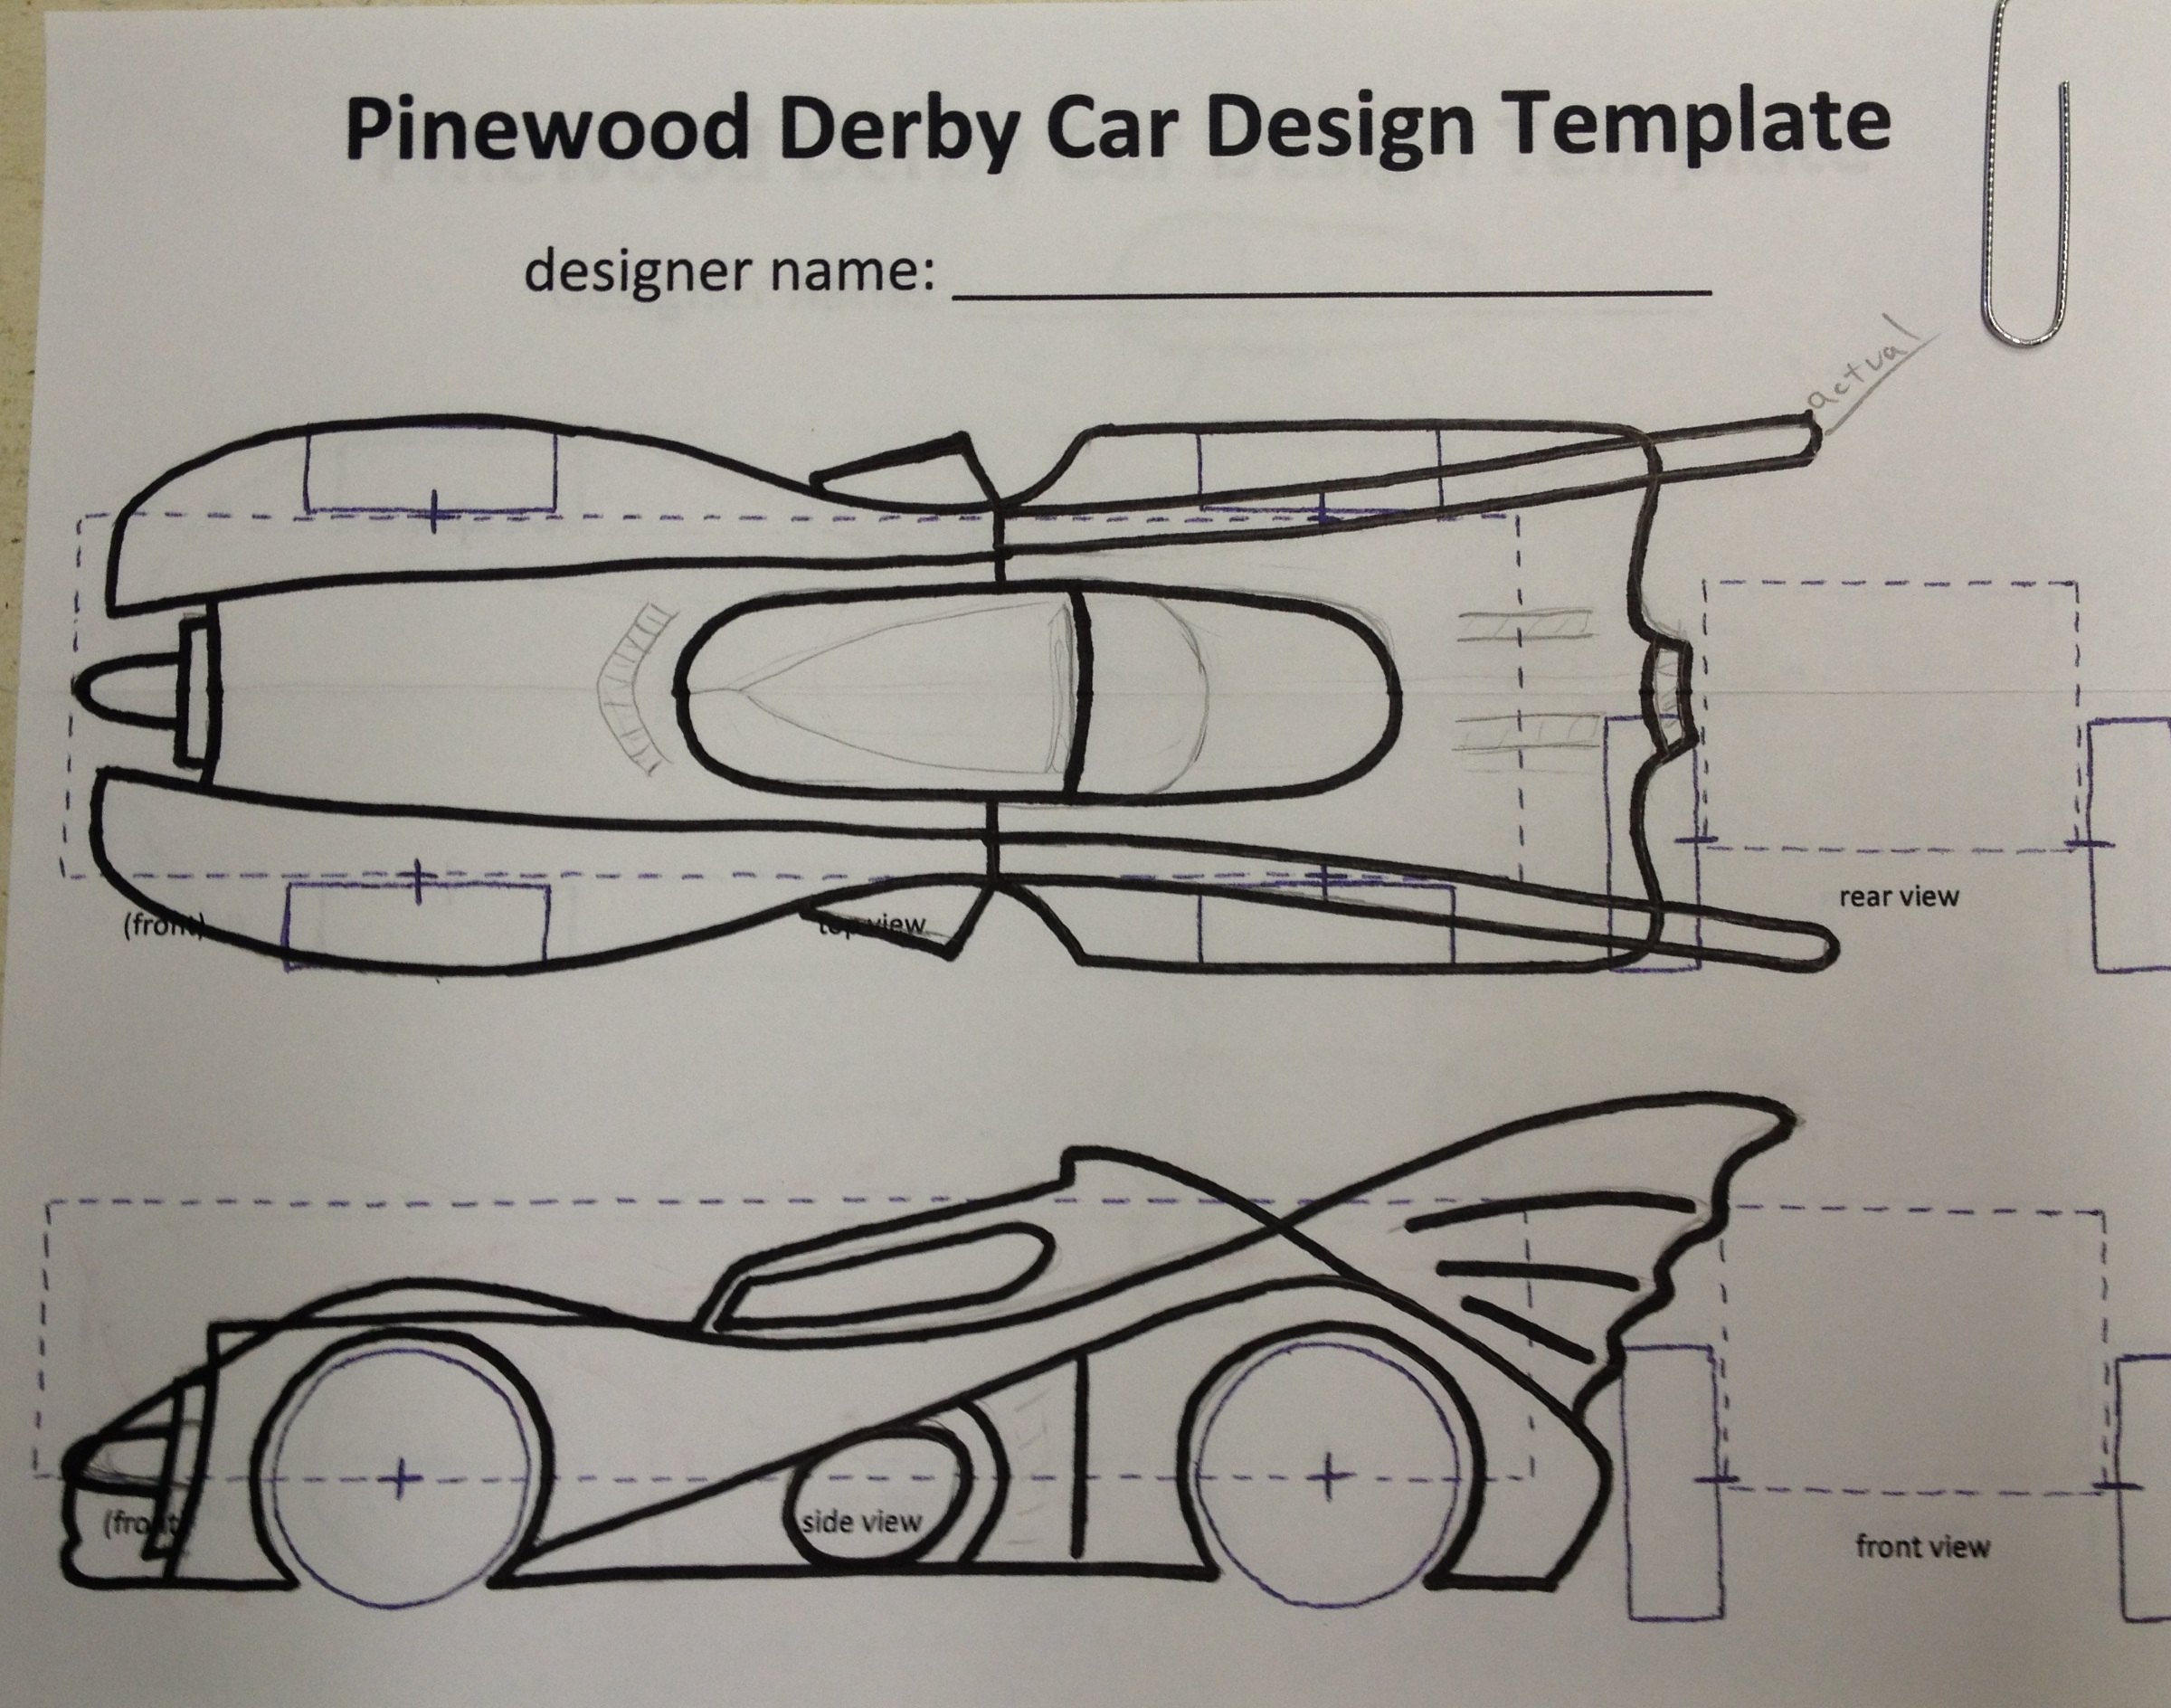 How to build an awesome batmobile pinewood derby car for Free templates for pinewood derby cars